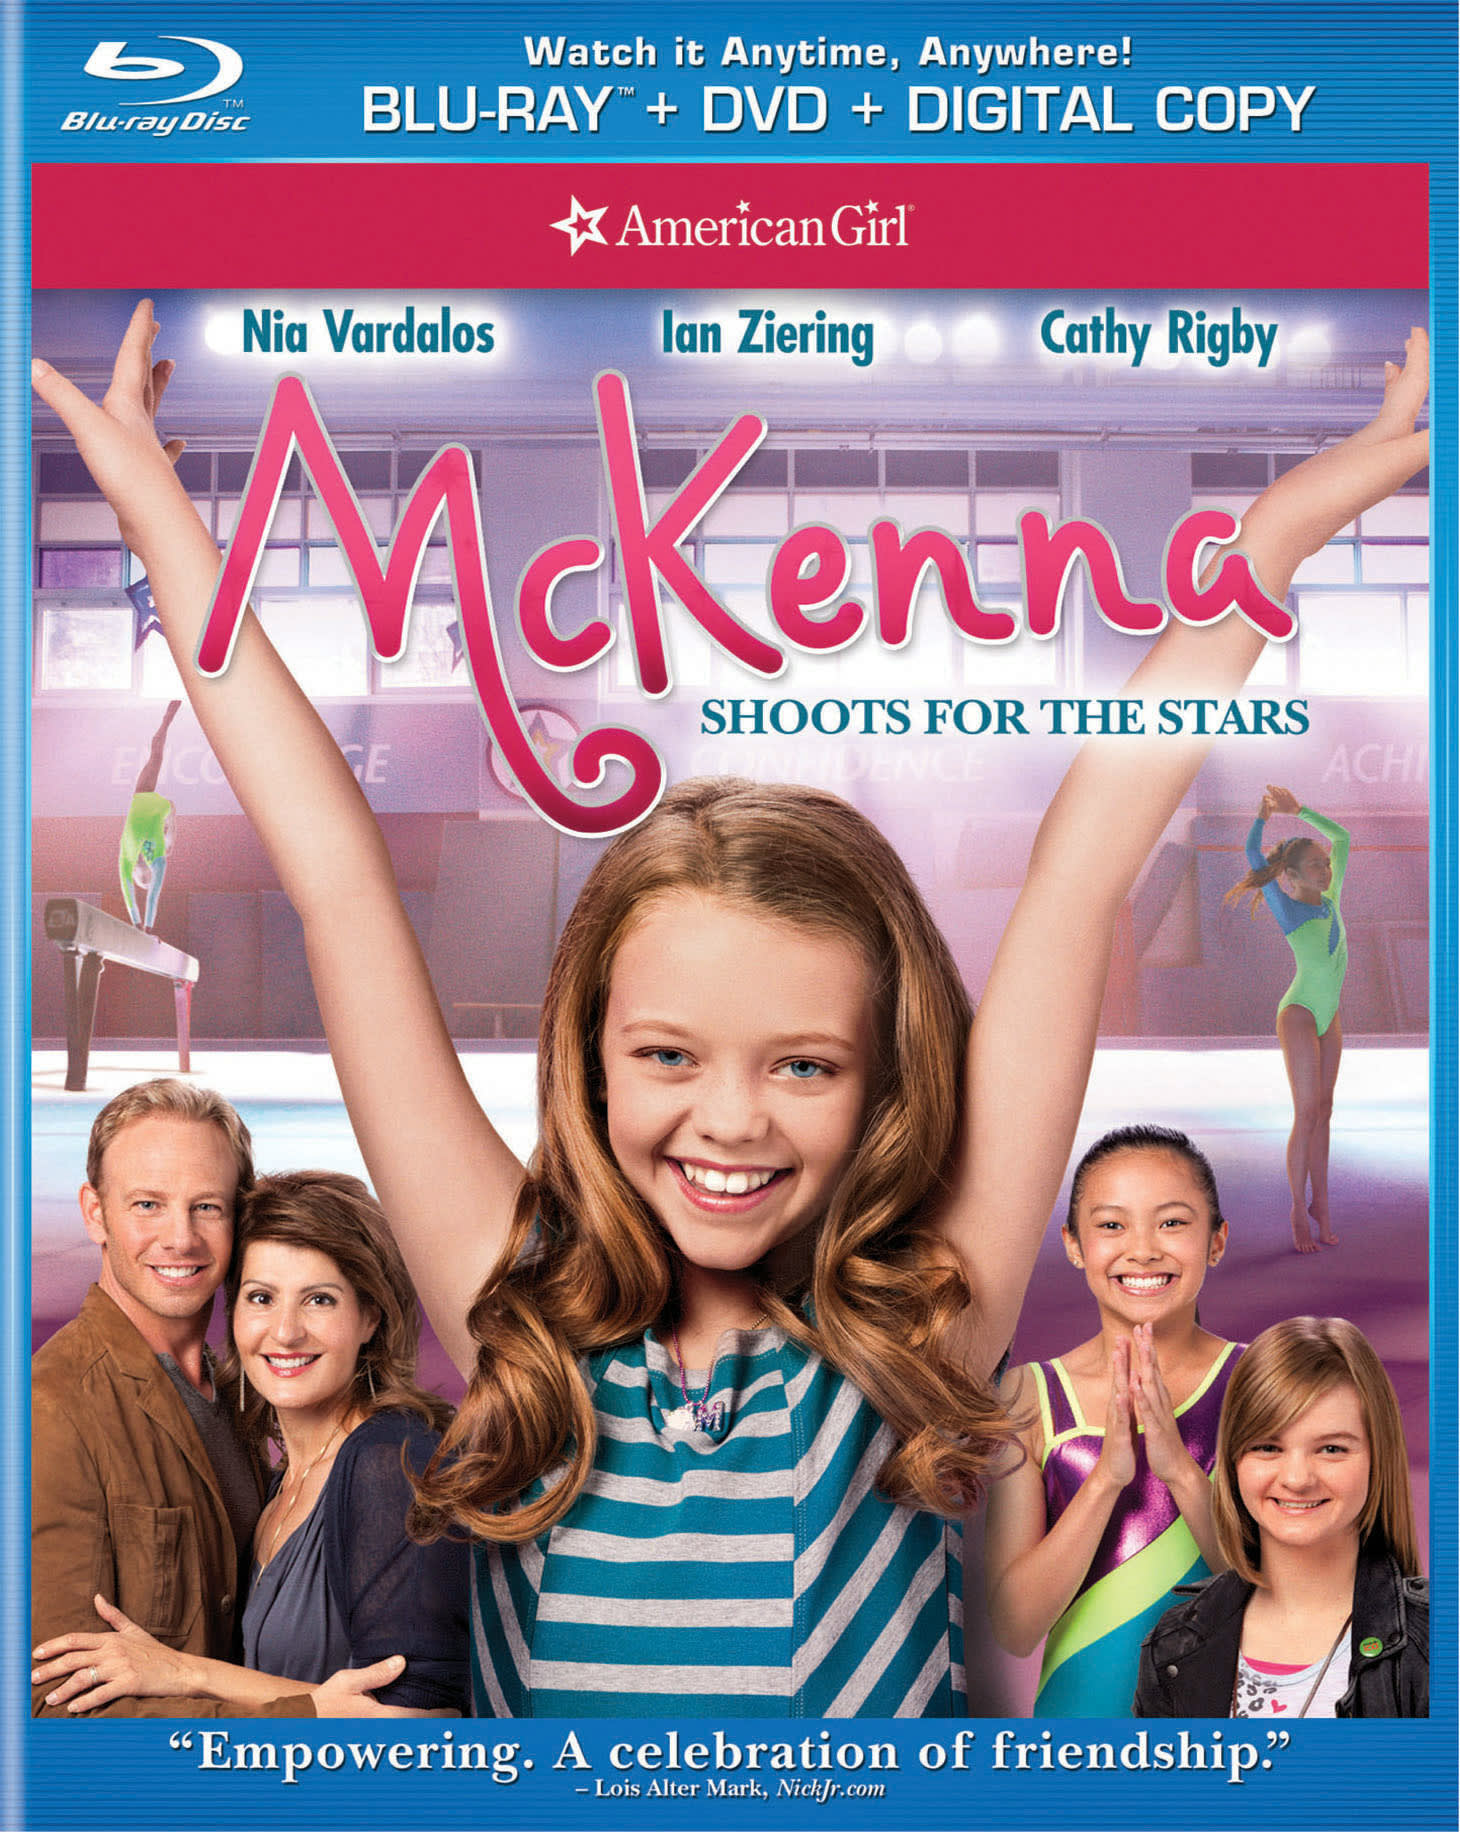 American Girl: Shooting for the Stars (DVD + Digital) [Blu-ray]